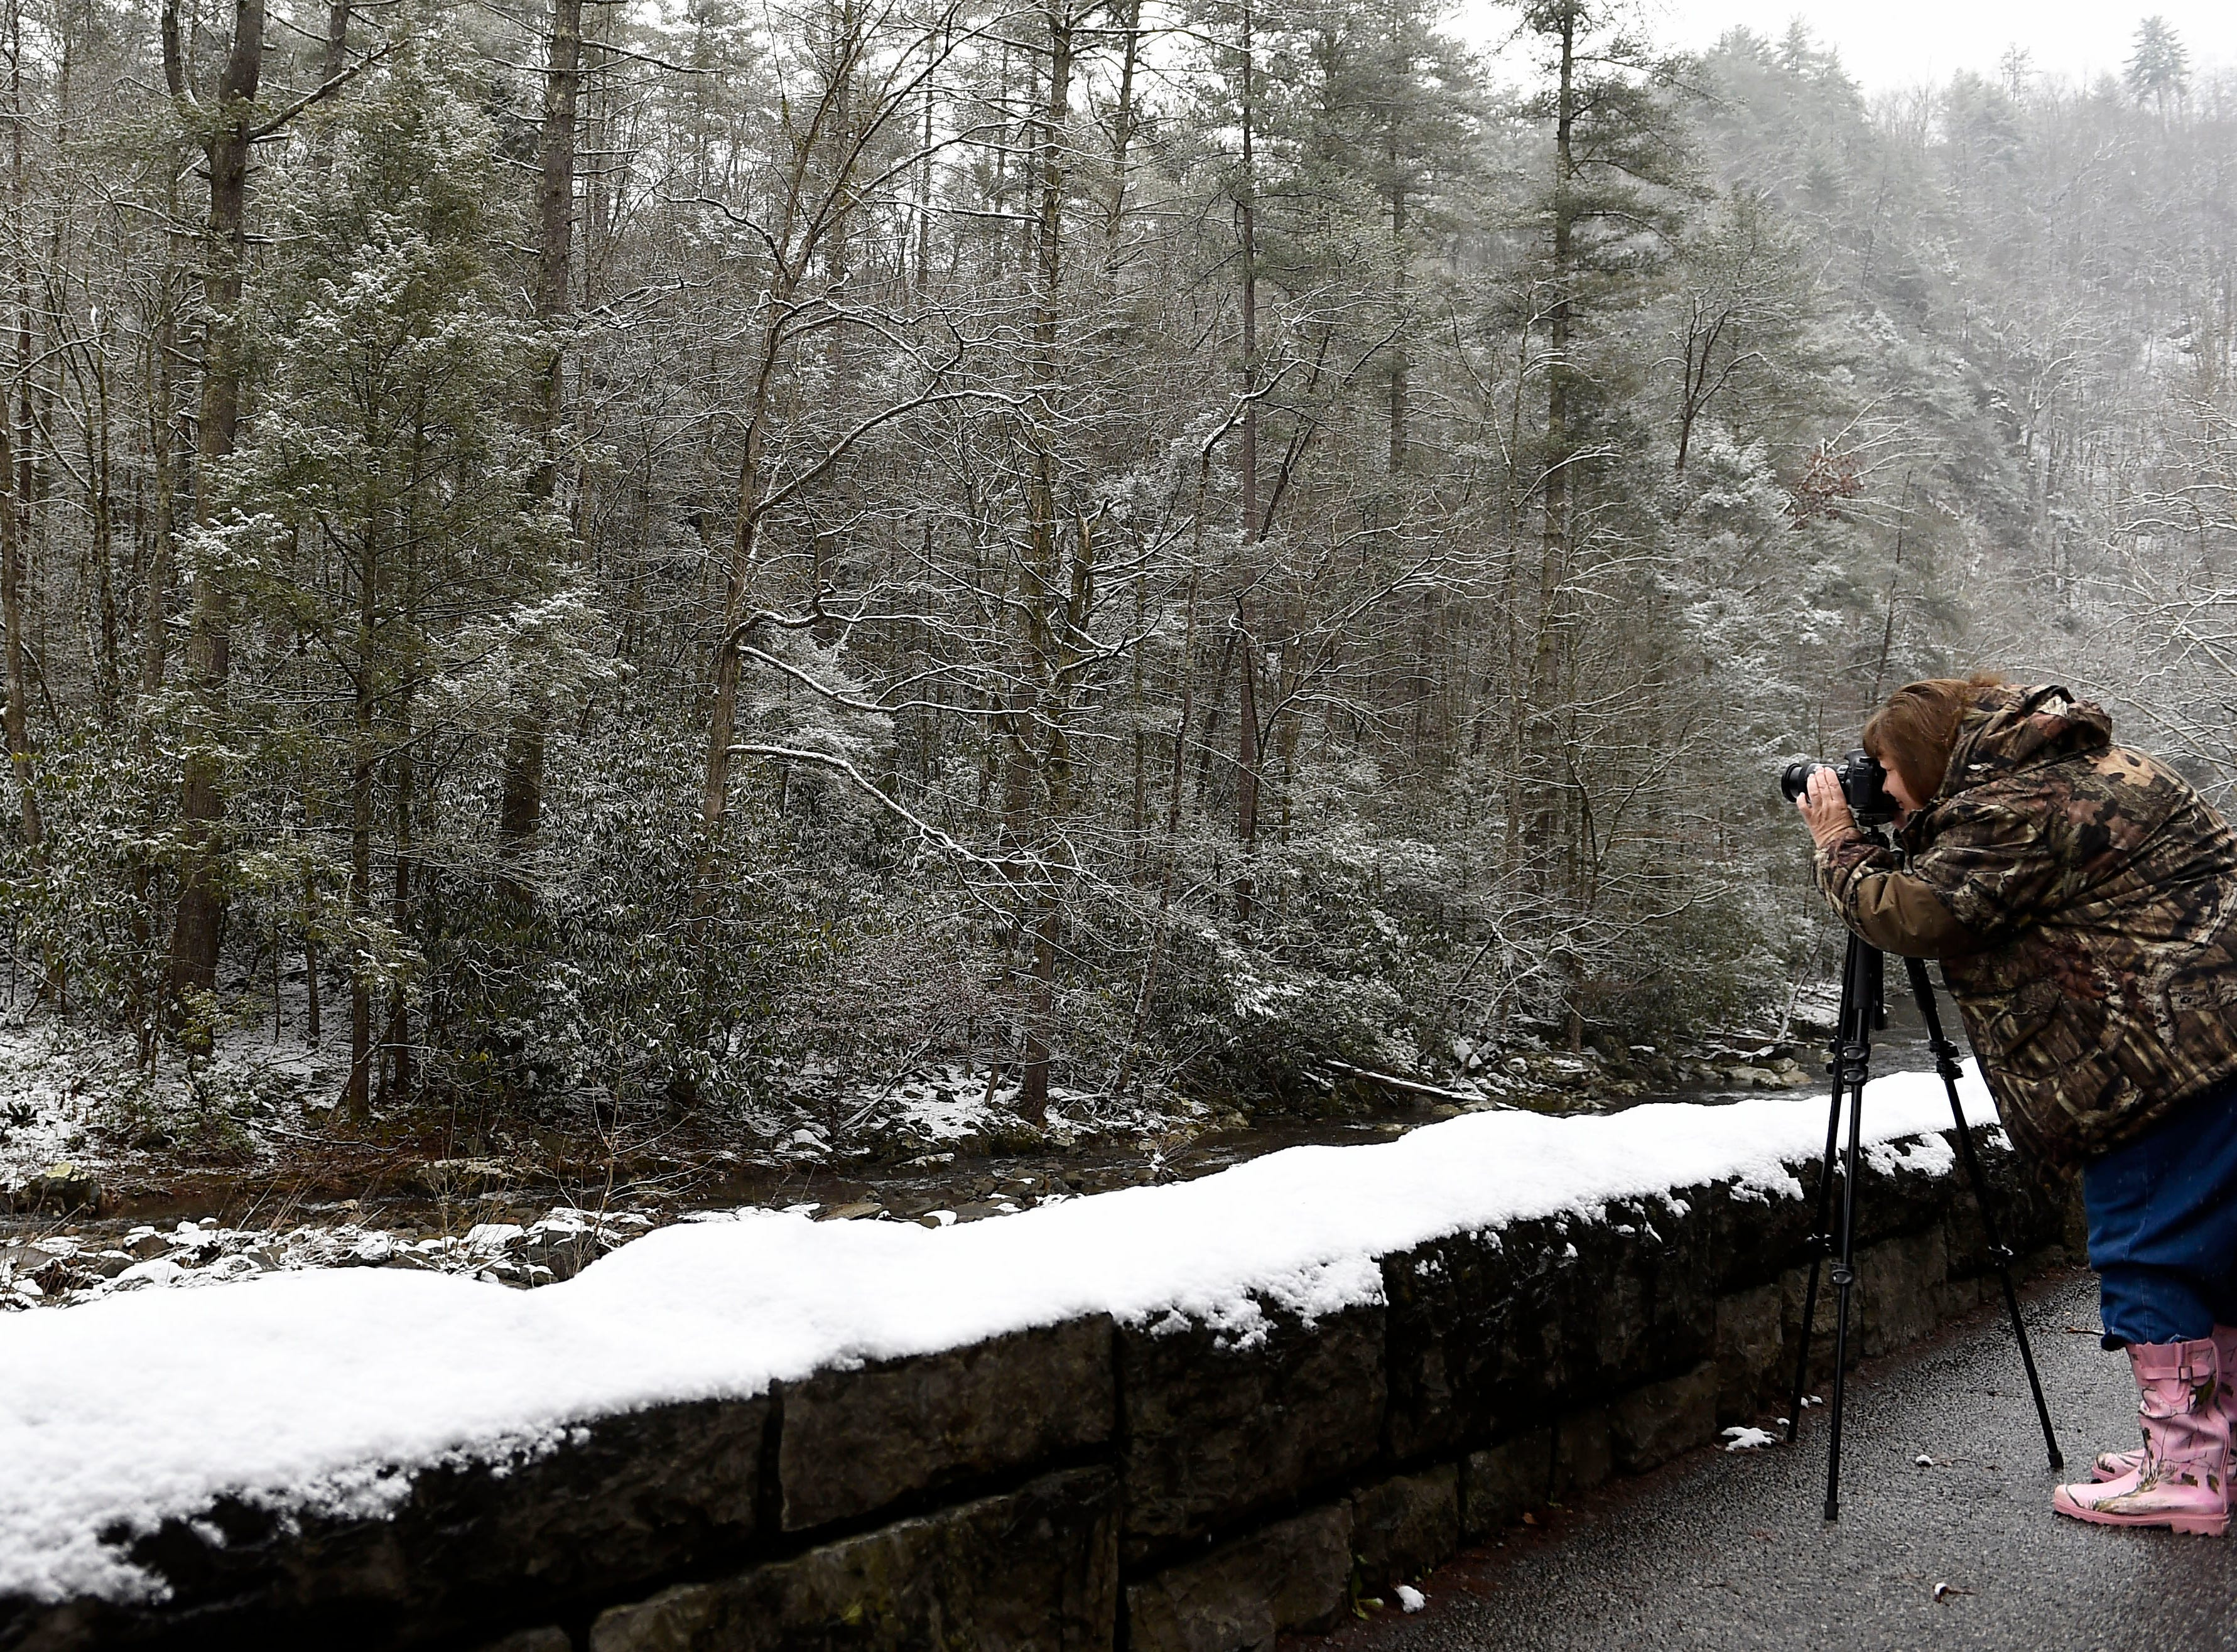 Faye Sykes of Clintwood, Va., takes photographs in the Great Smoky Mountains National Park Tuesday, Jan. 27, 2015. The Smokies is off to strong start for 2015 with a record number of visitors recorded for January. (AMY SMOTHERMAN BURGESS/NEWS SENTINEL)